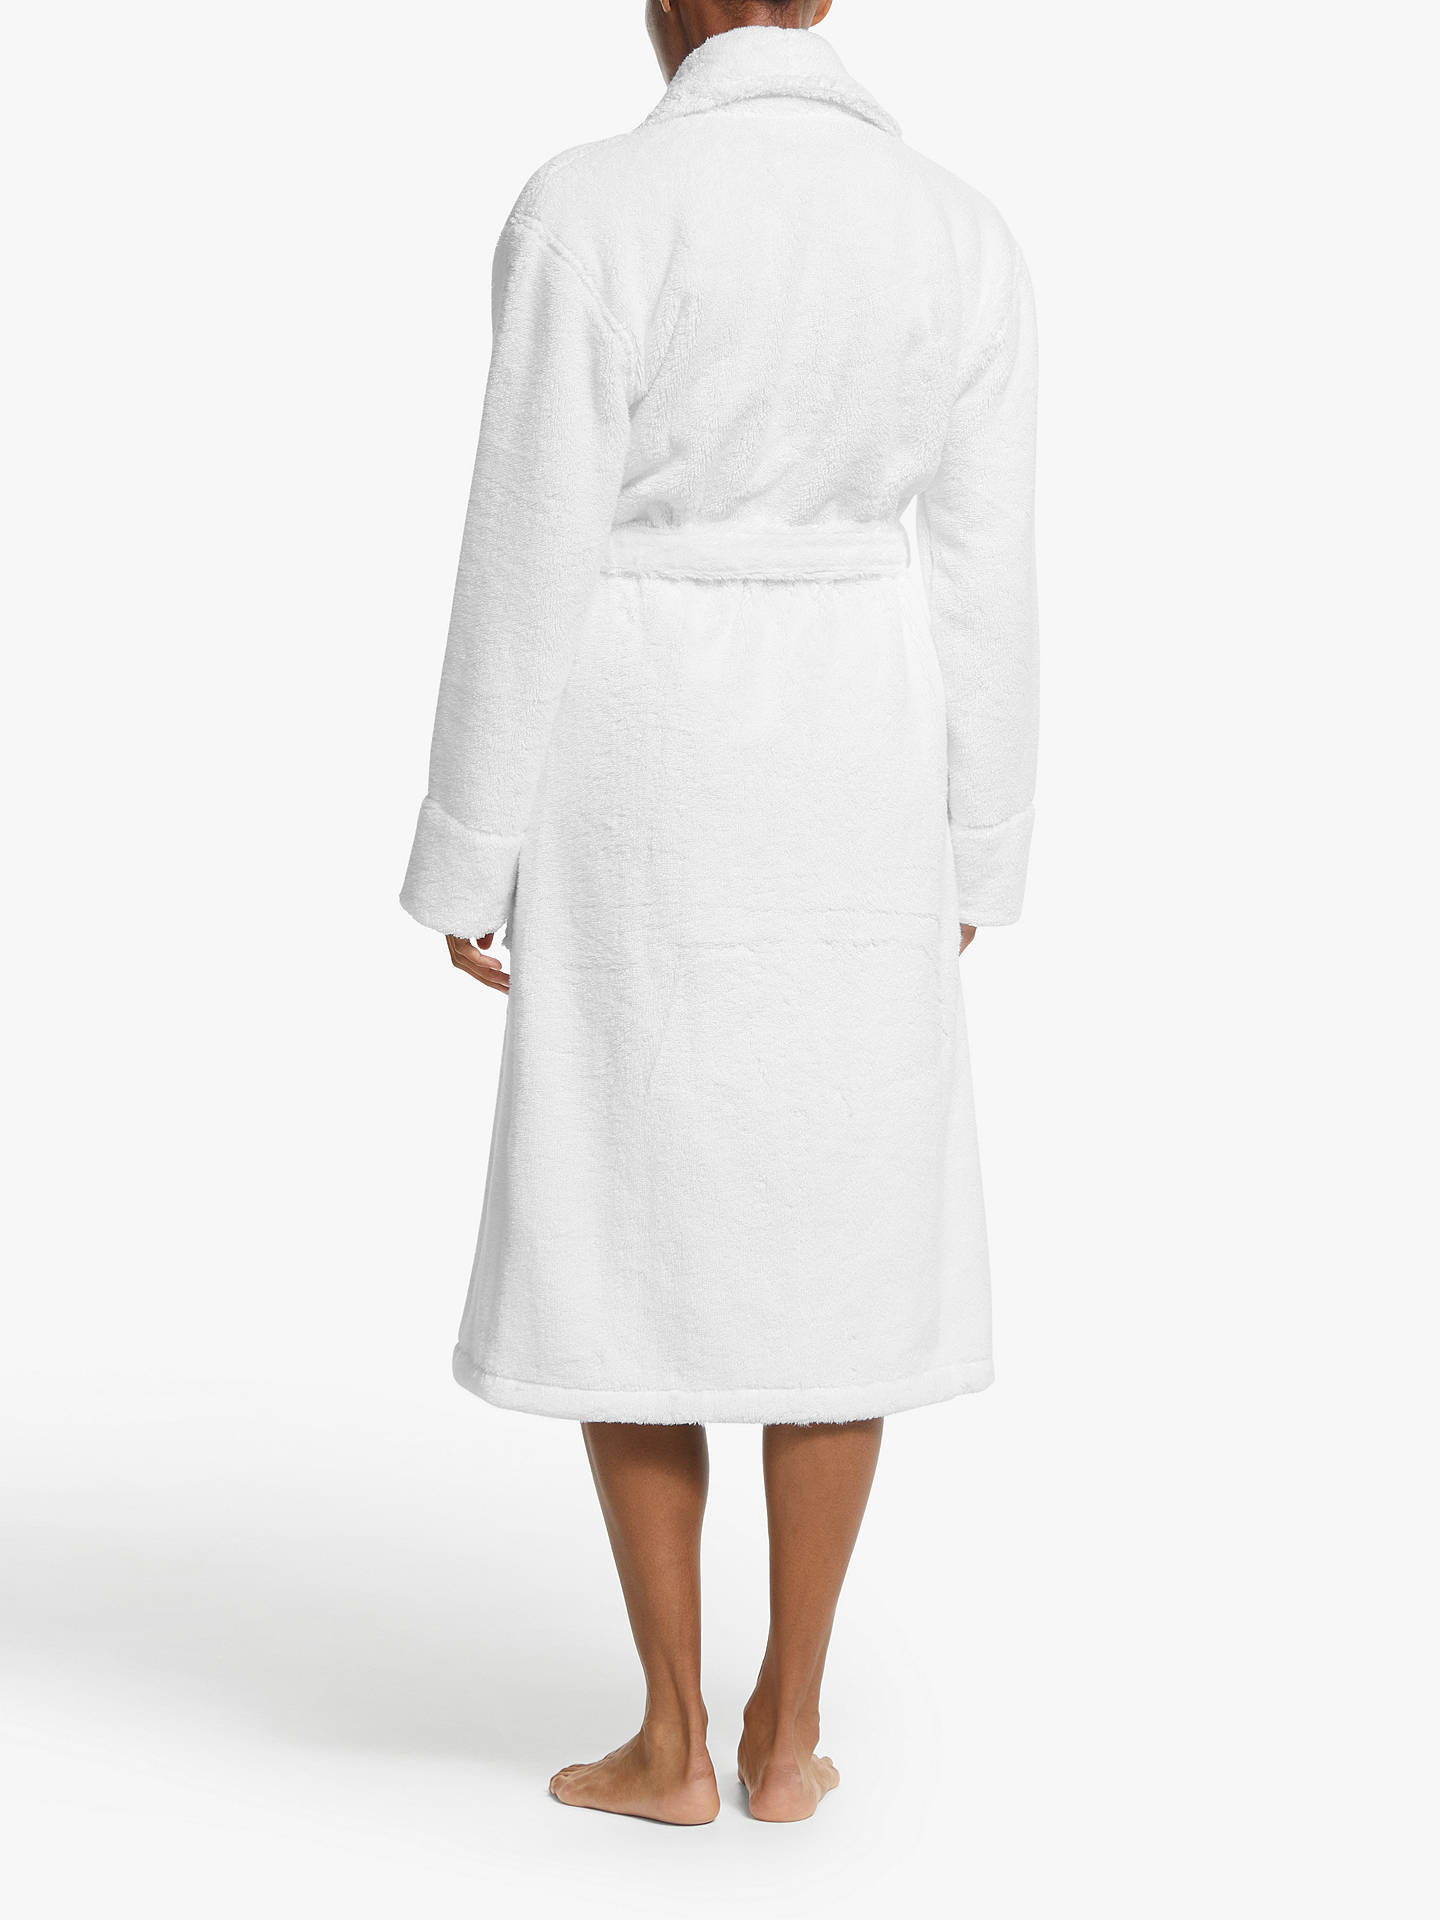 BuyJohn Lewis & Partners Luxury Towelling Robe, White, S Online at johnlewis.com